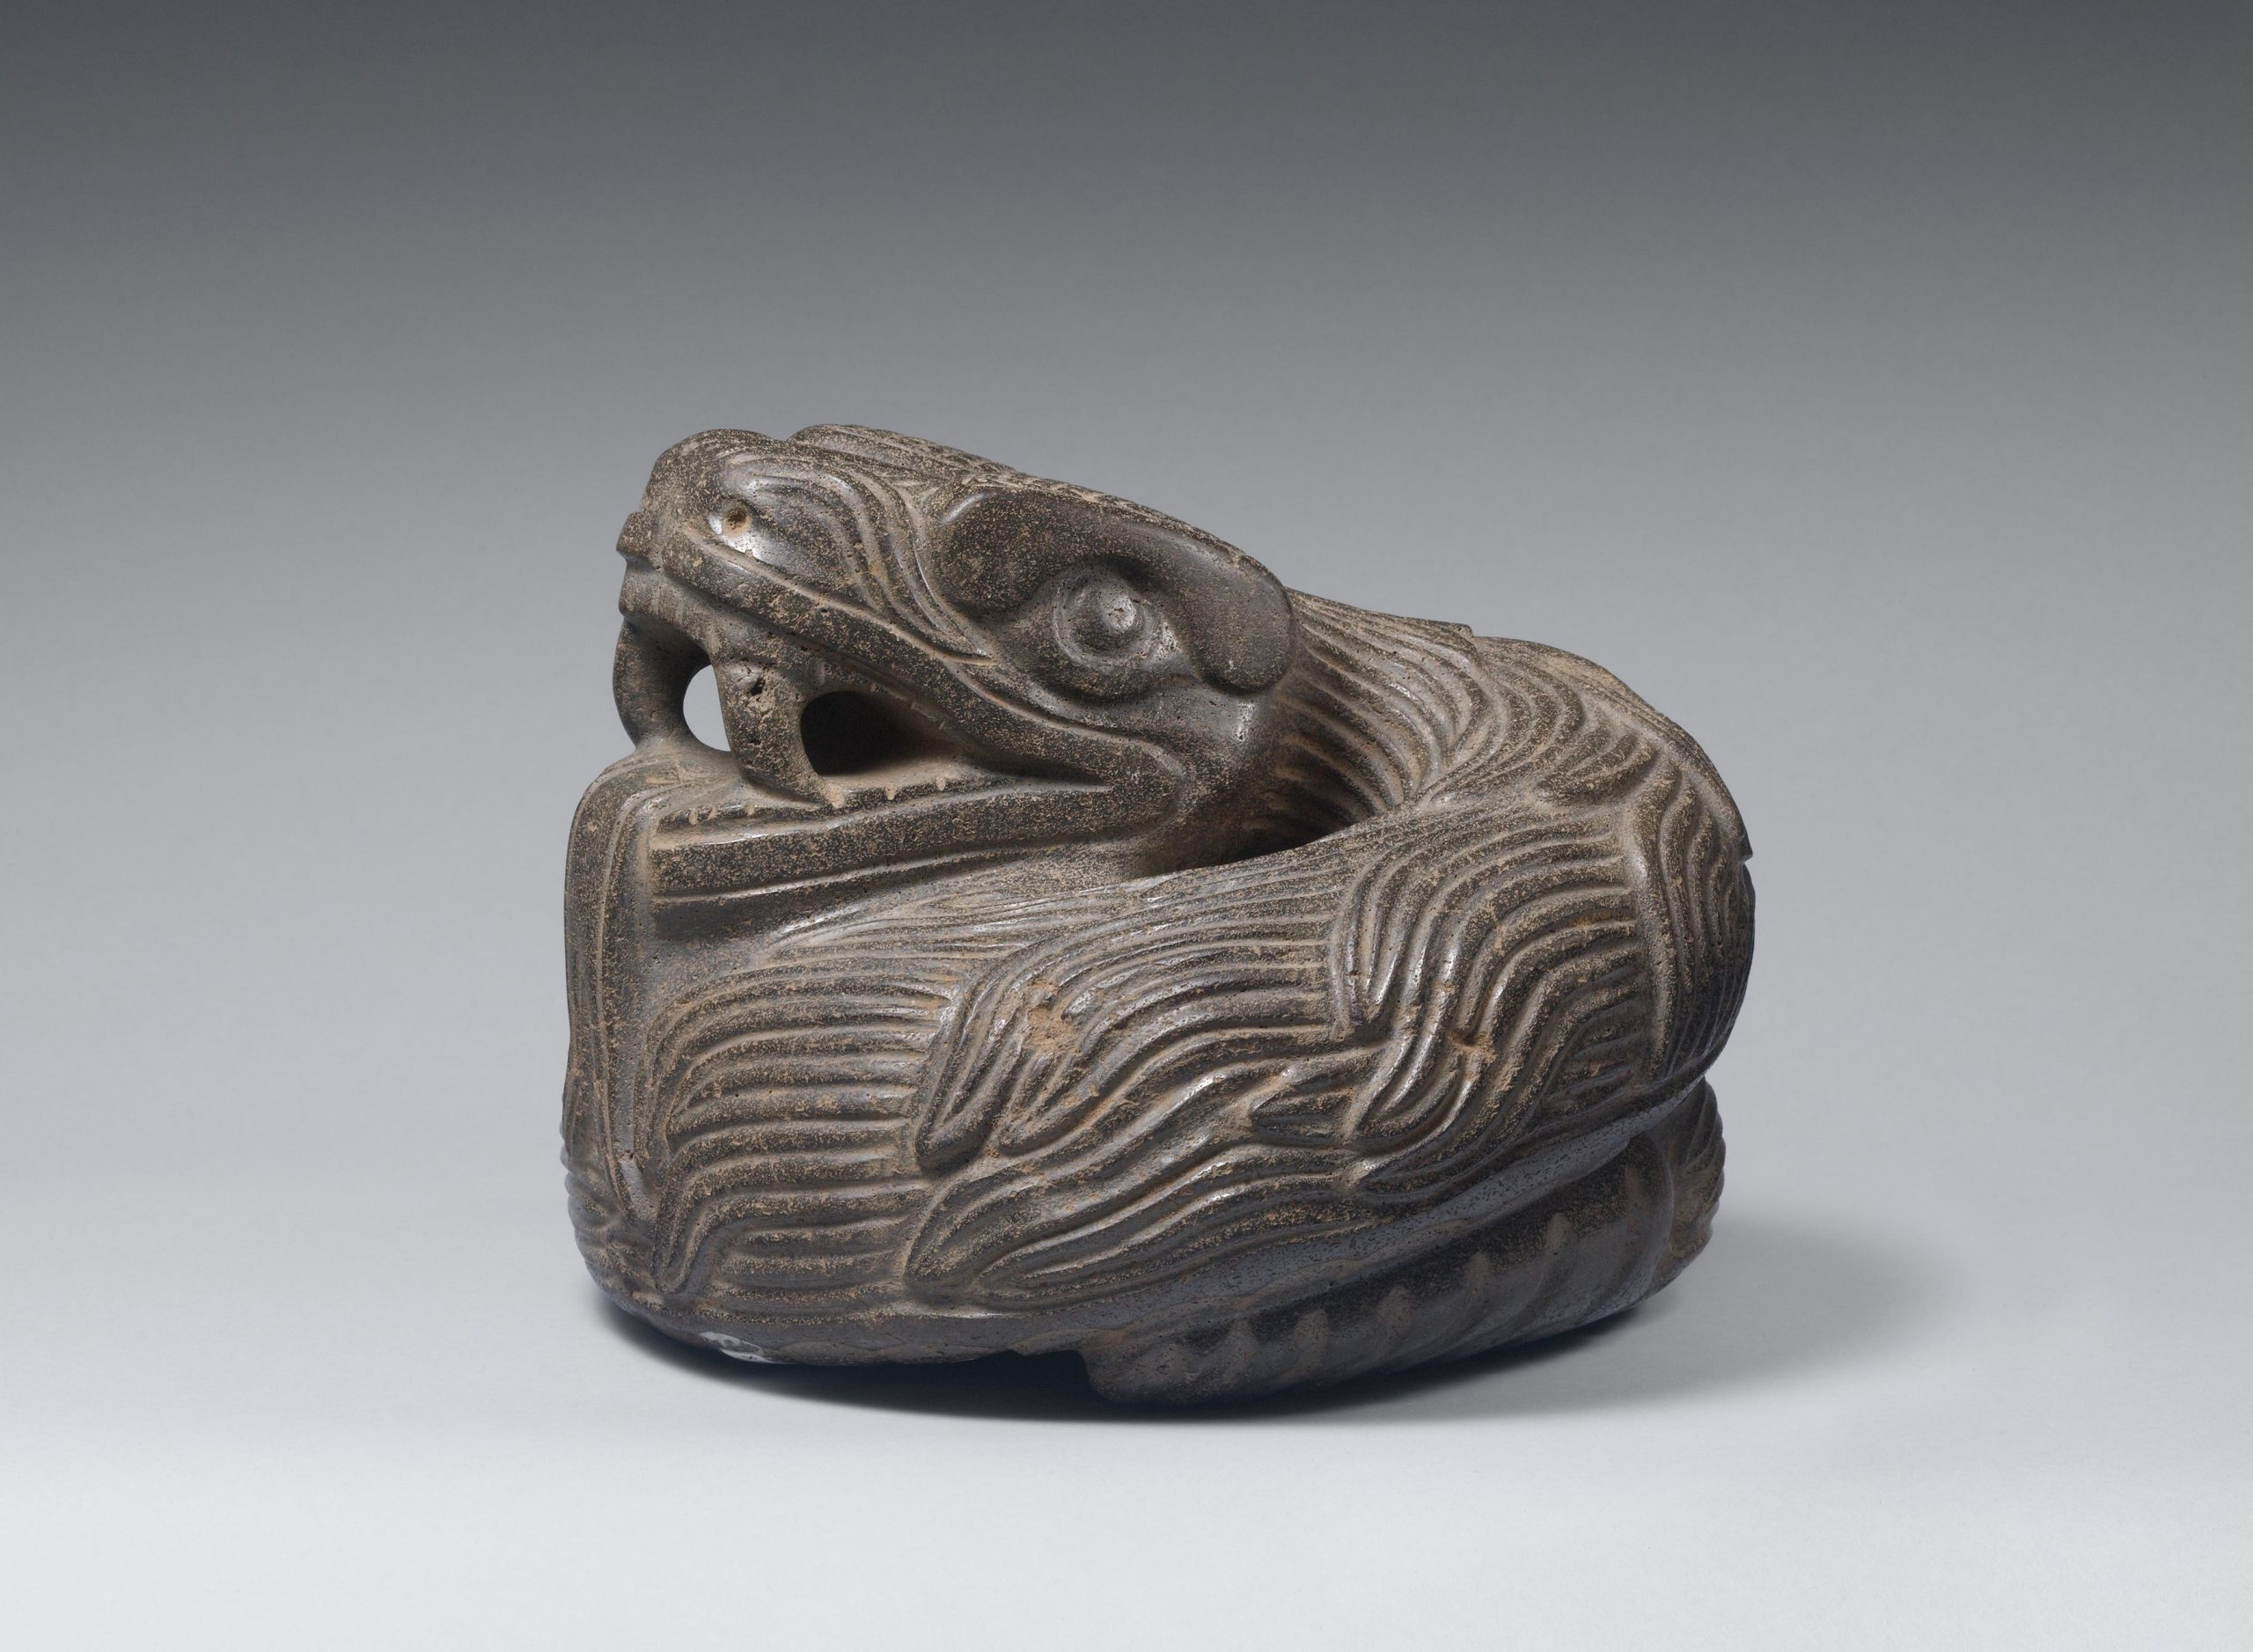 Sculpture of a coiled quetzalcoatl feathered serpent with open mouth exposing prominent fangs.